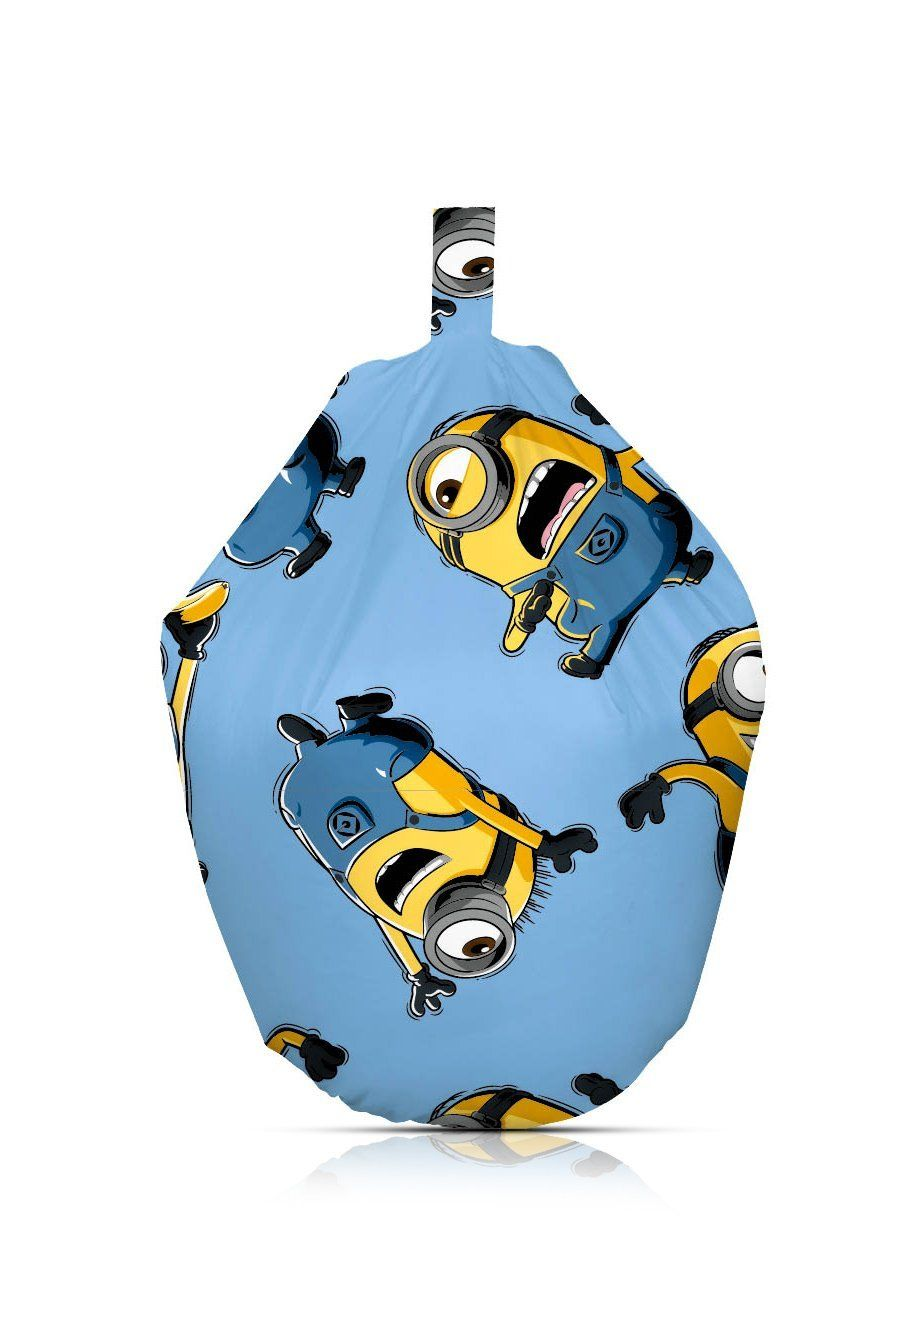 Our Minions Bello Bean Bag Is An Officially Licensed